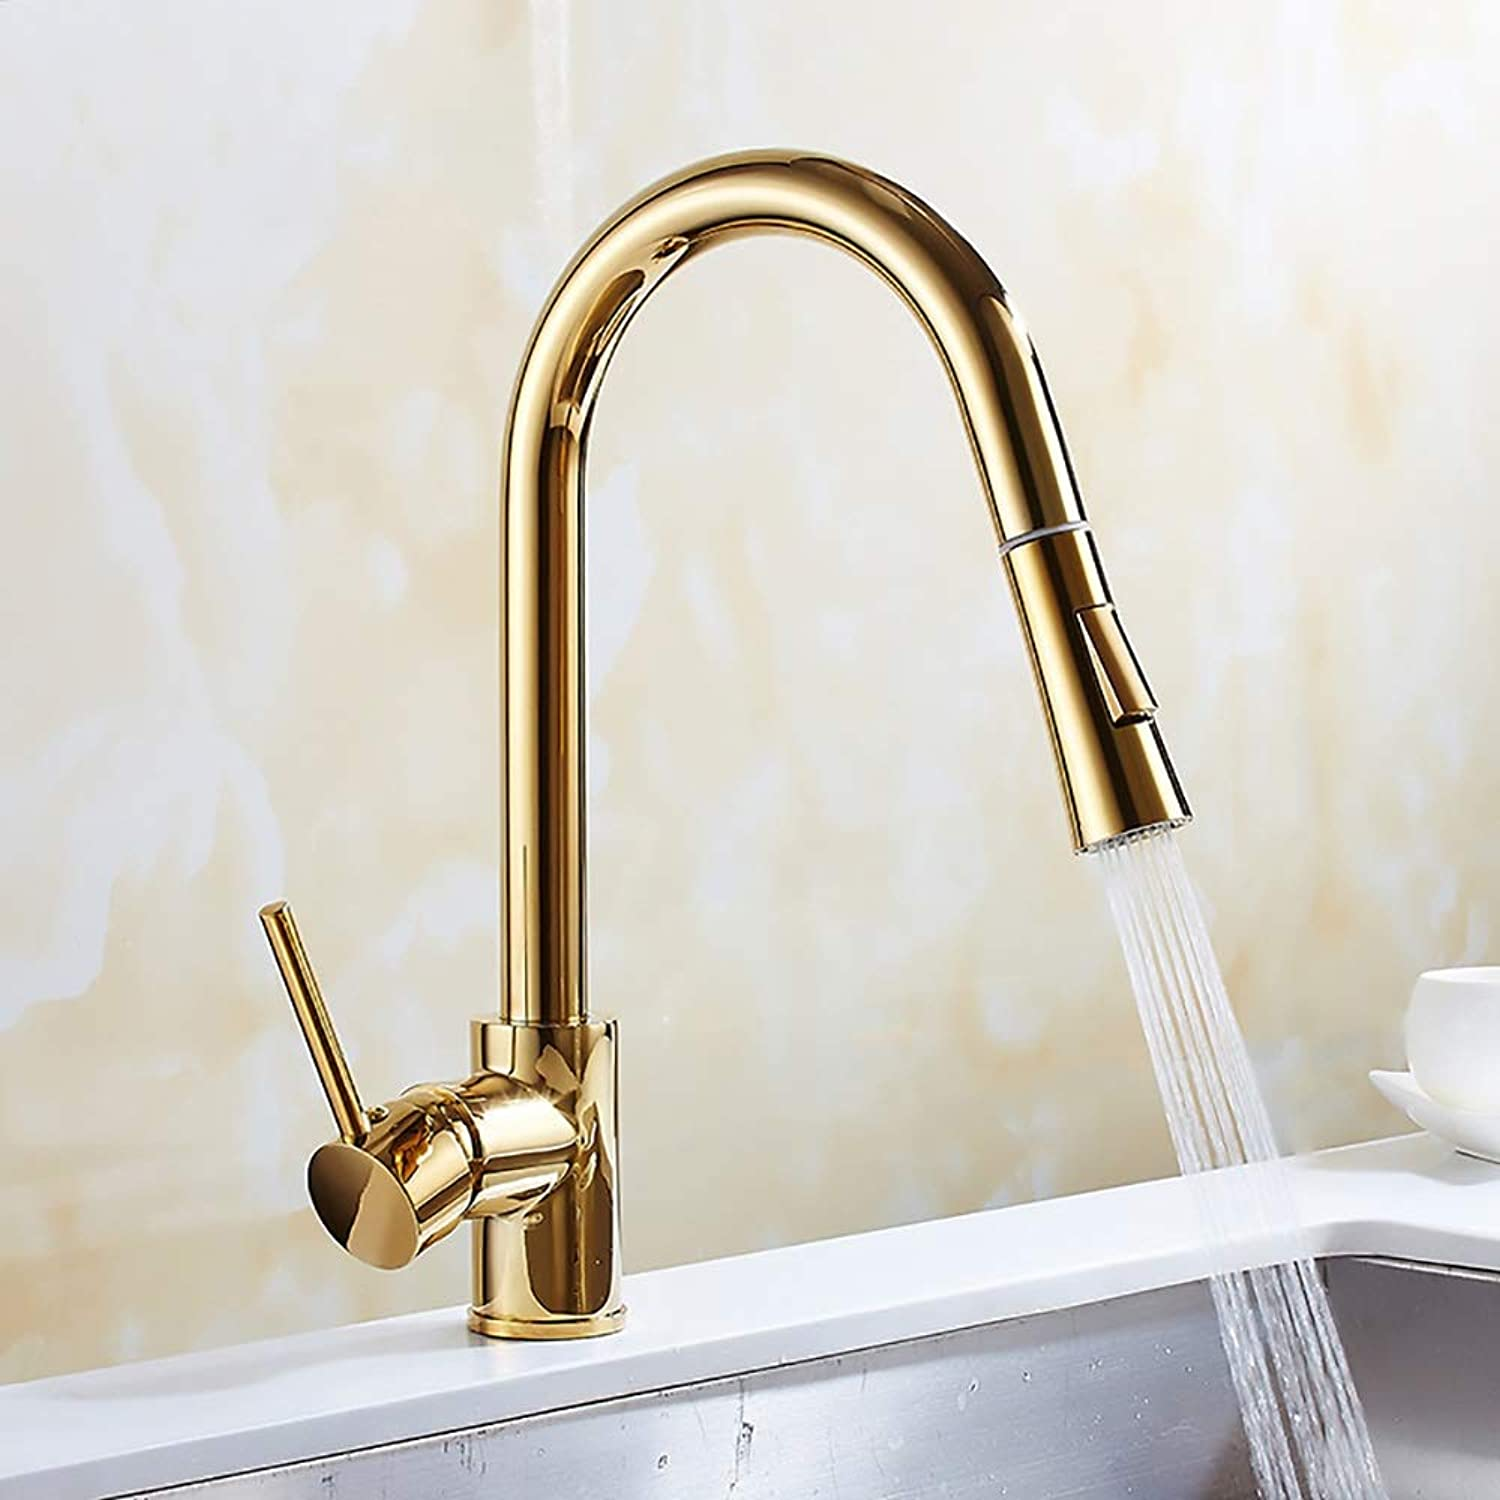 WWFF gold-plated Copper Pull Faucet redating Kitchen Faucet Sink Sink Adjustable Hot And Cold Faucet Durable